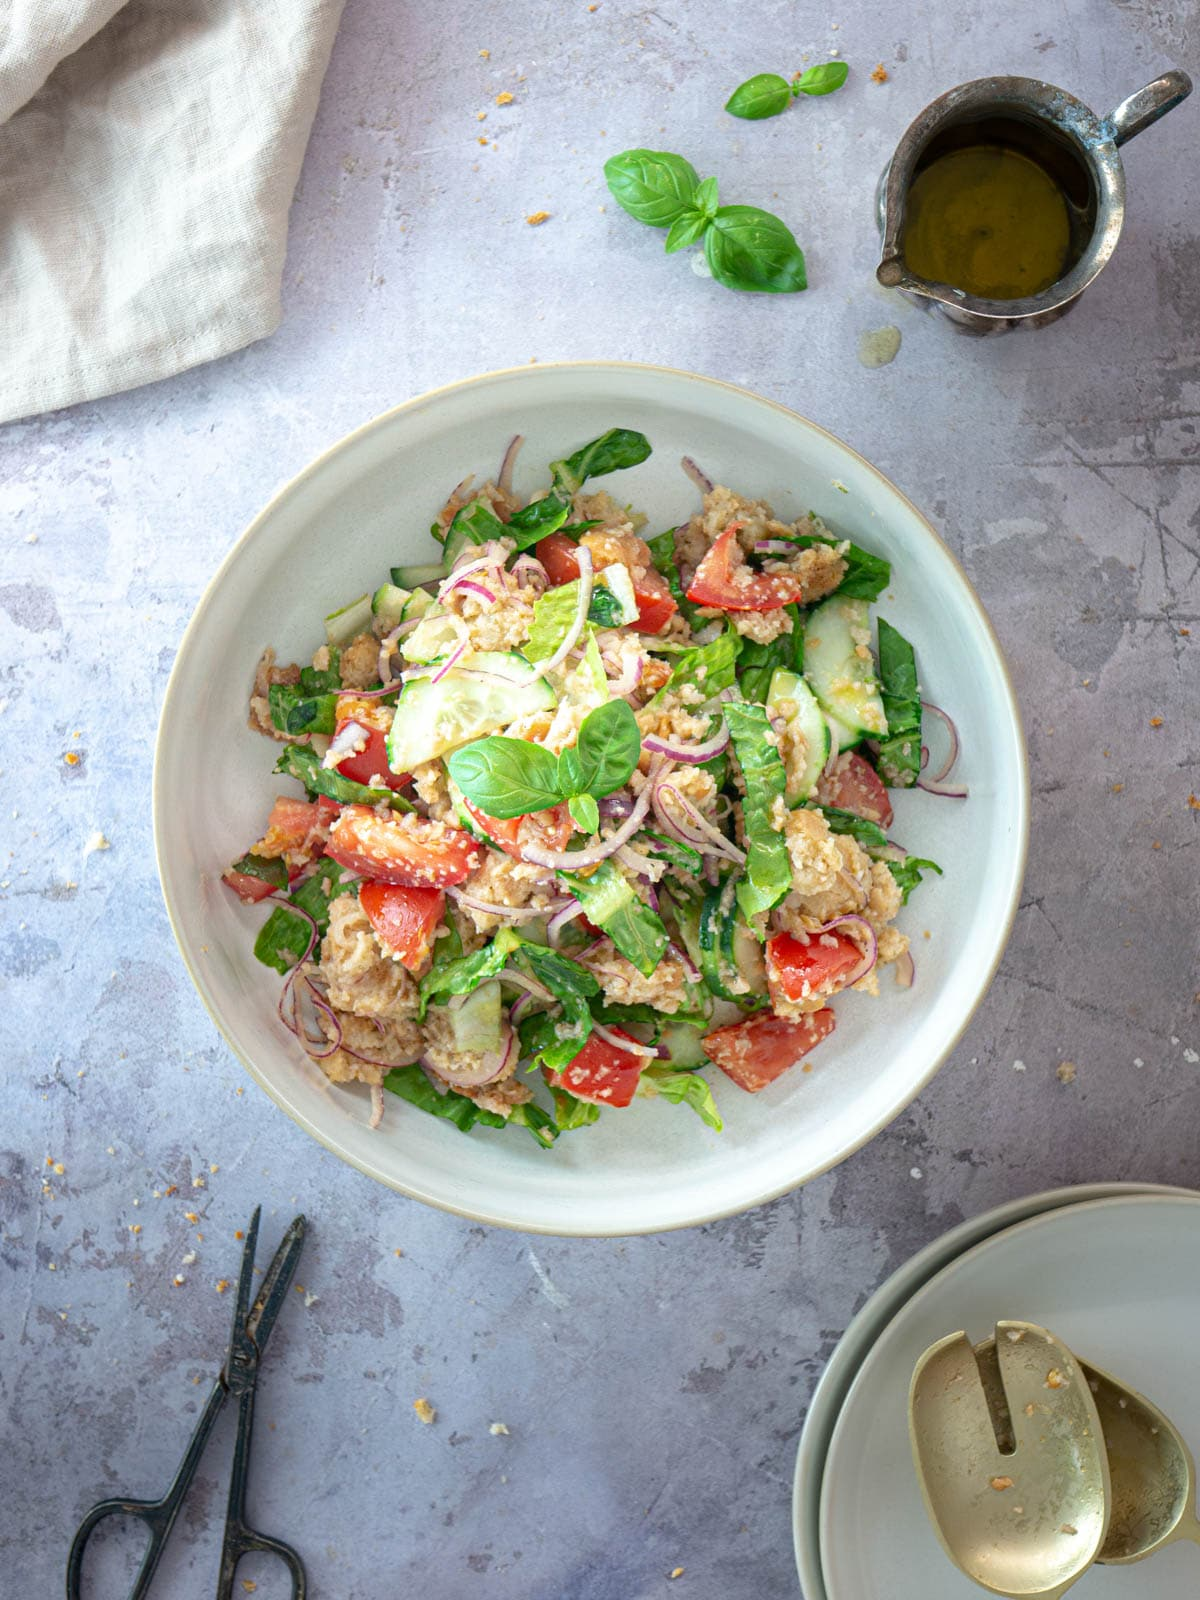 Traditional panzanella salad served in a bowl